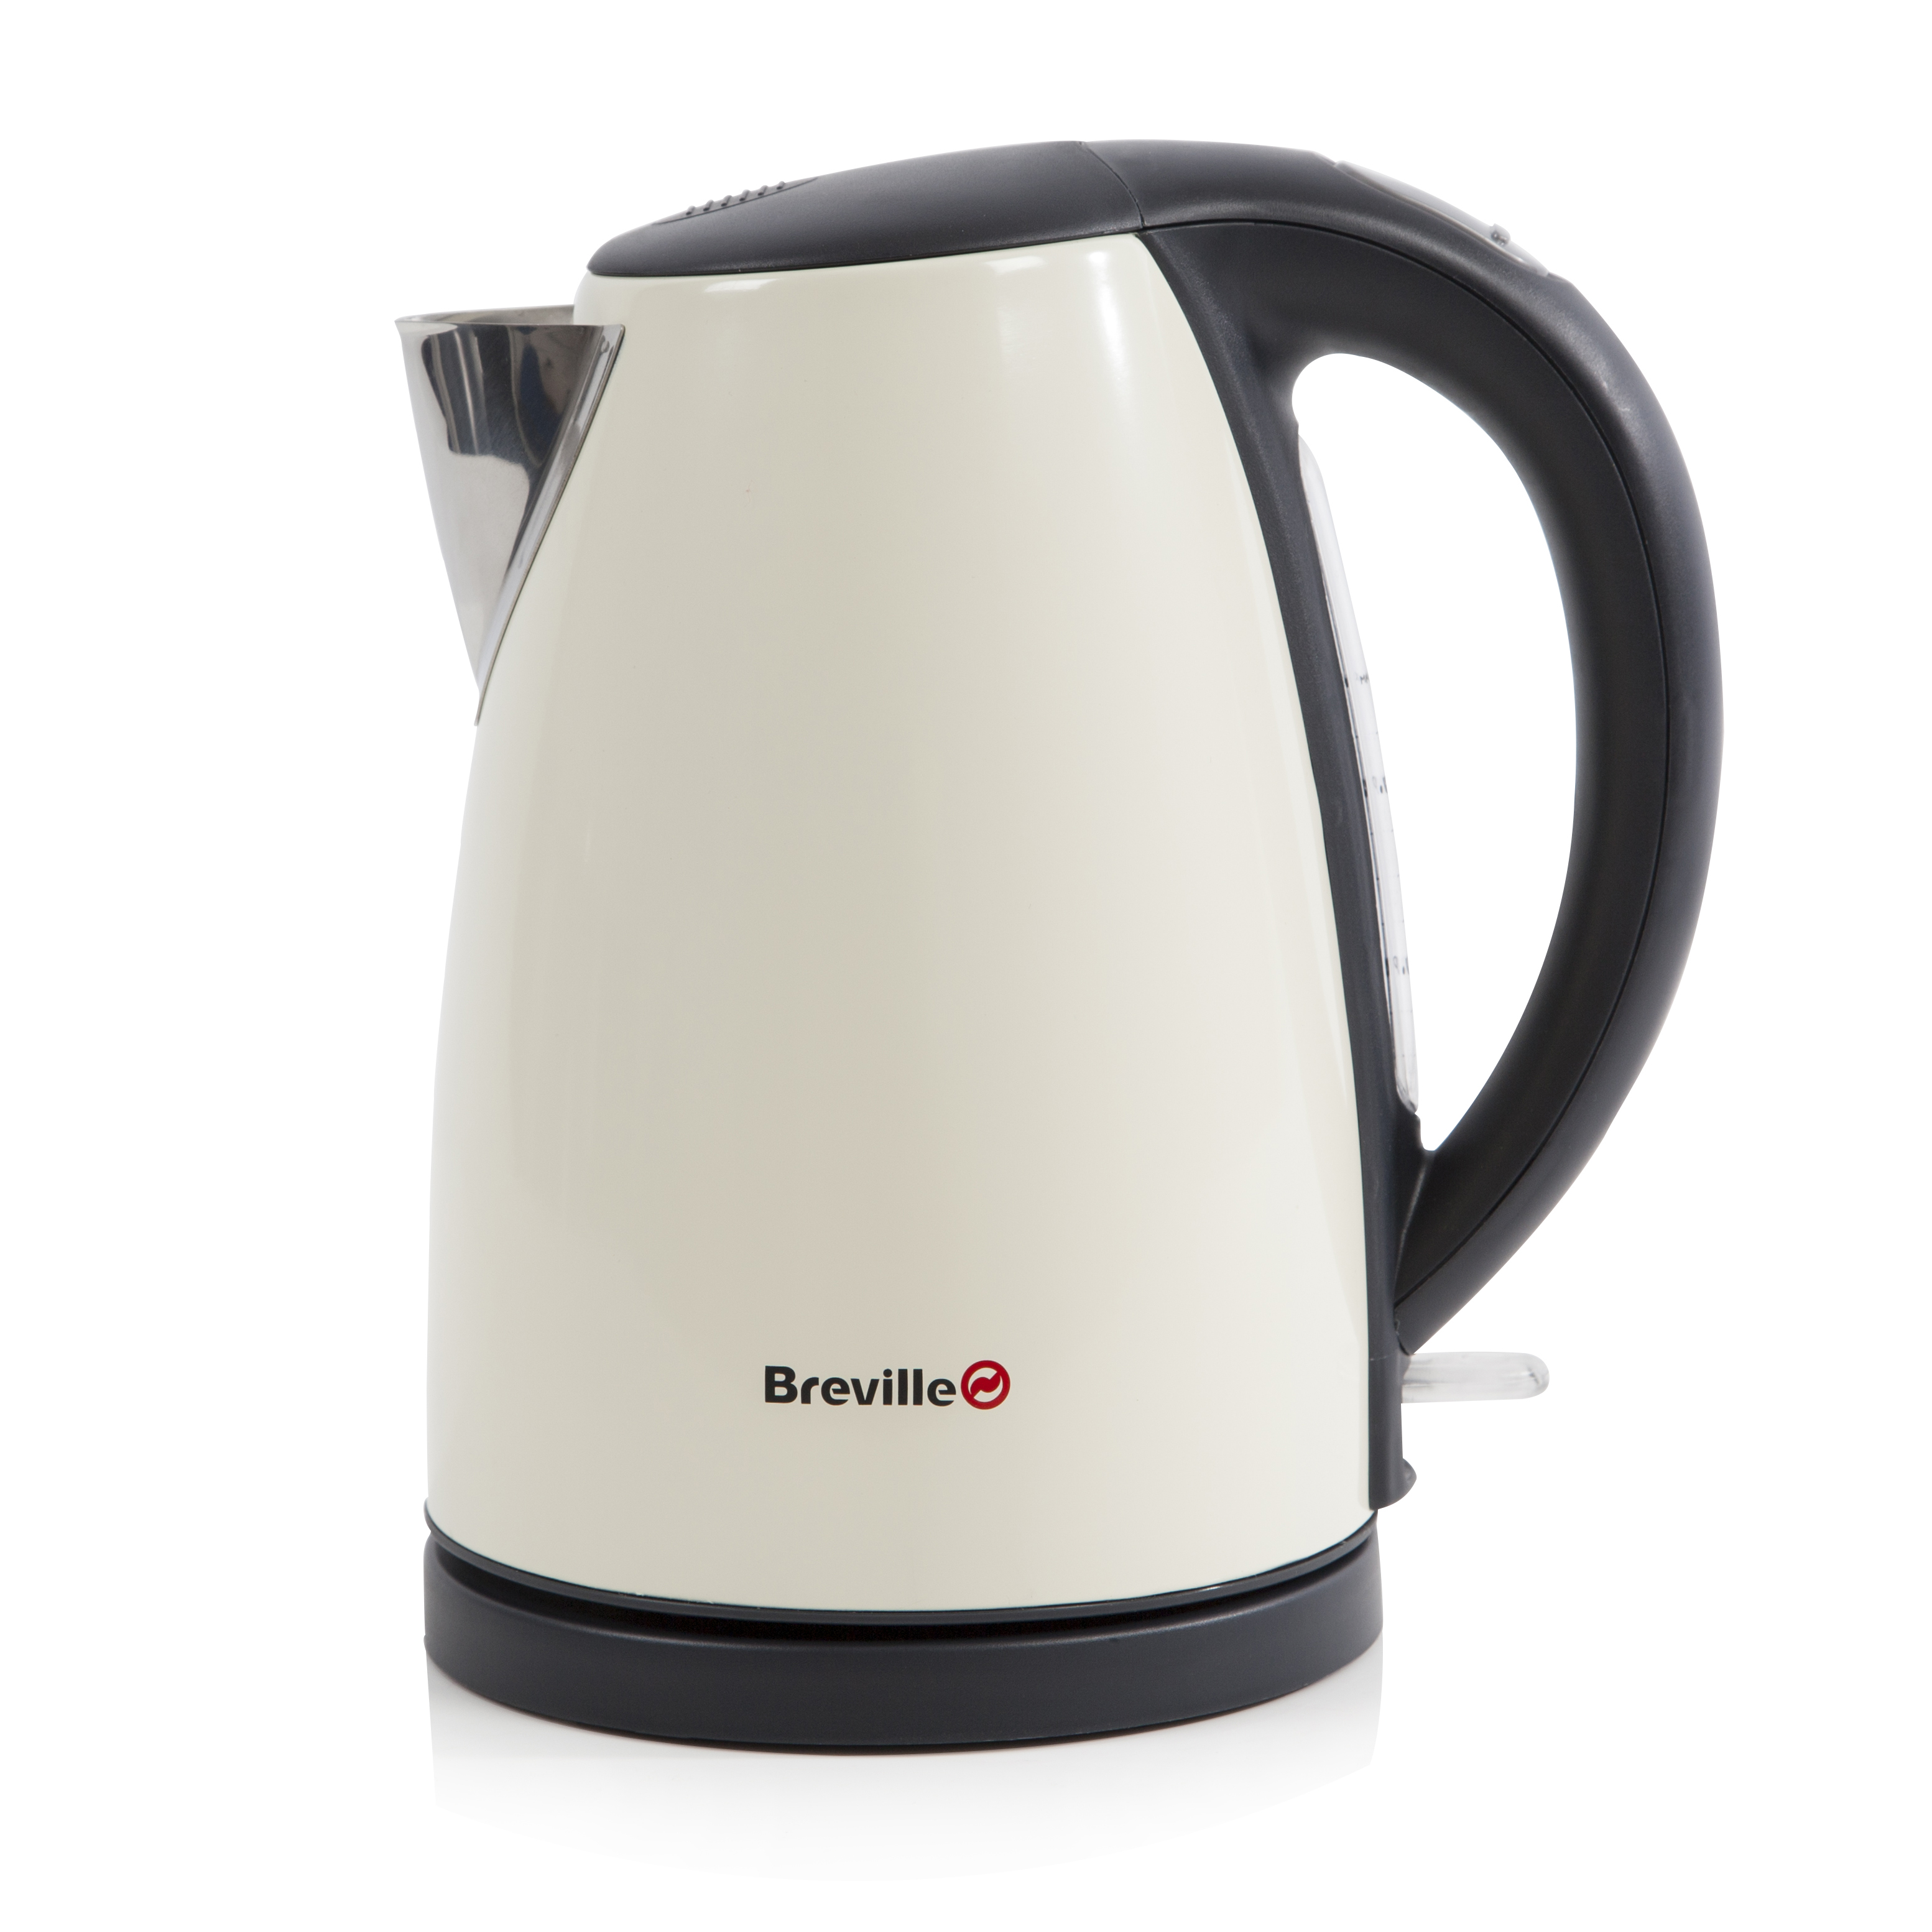 Breville Cream Stainless Steel Jug - Cream No Colour